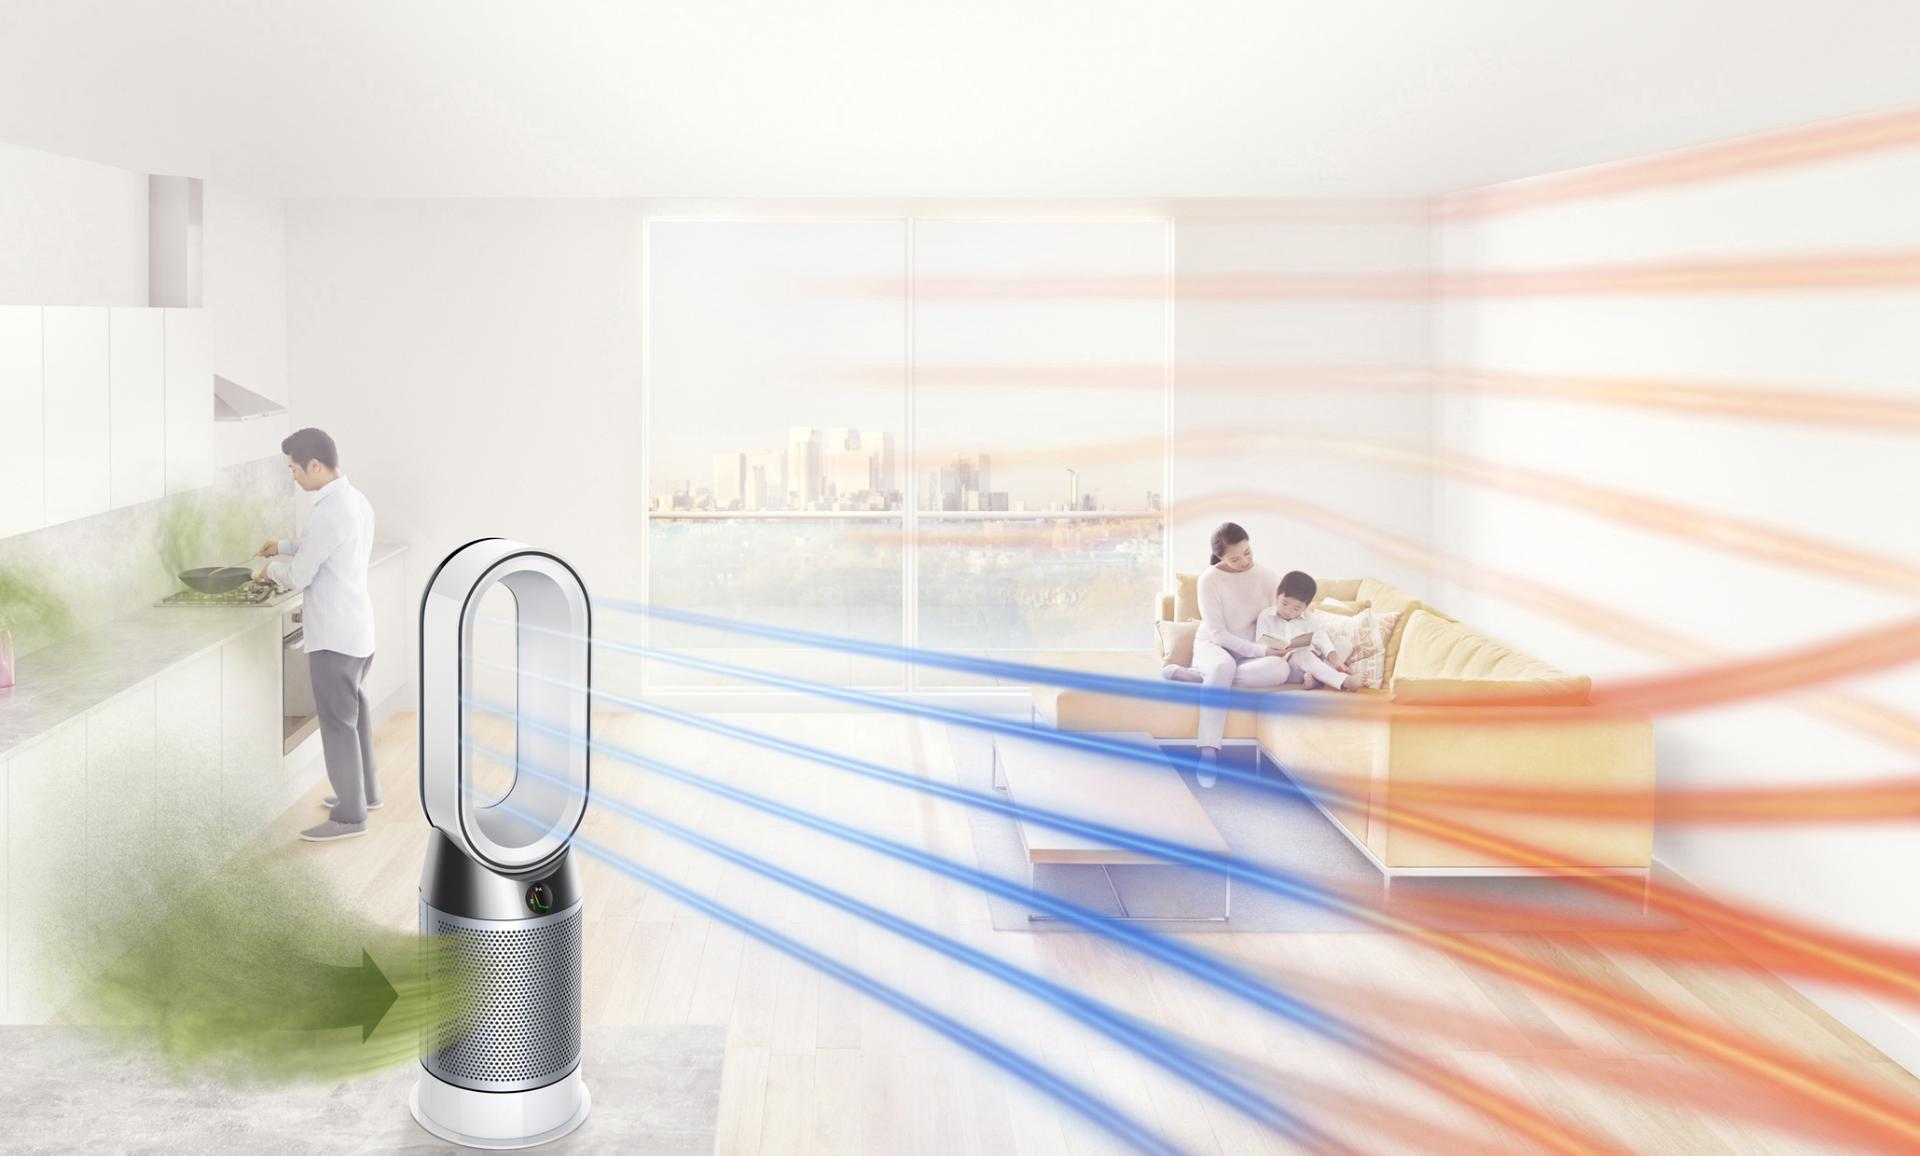 Dyson pure hot+cool air purifier & heater in living room projecting purified, warm air